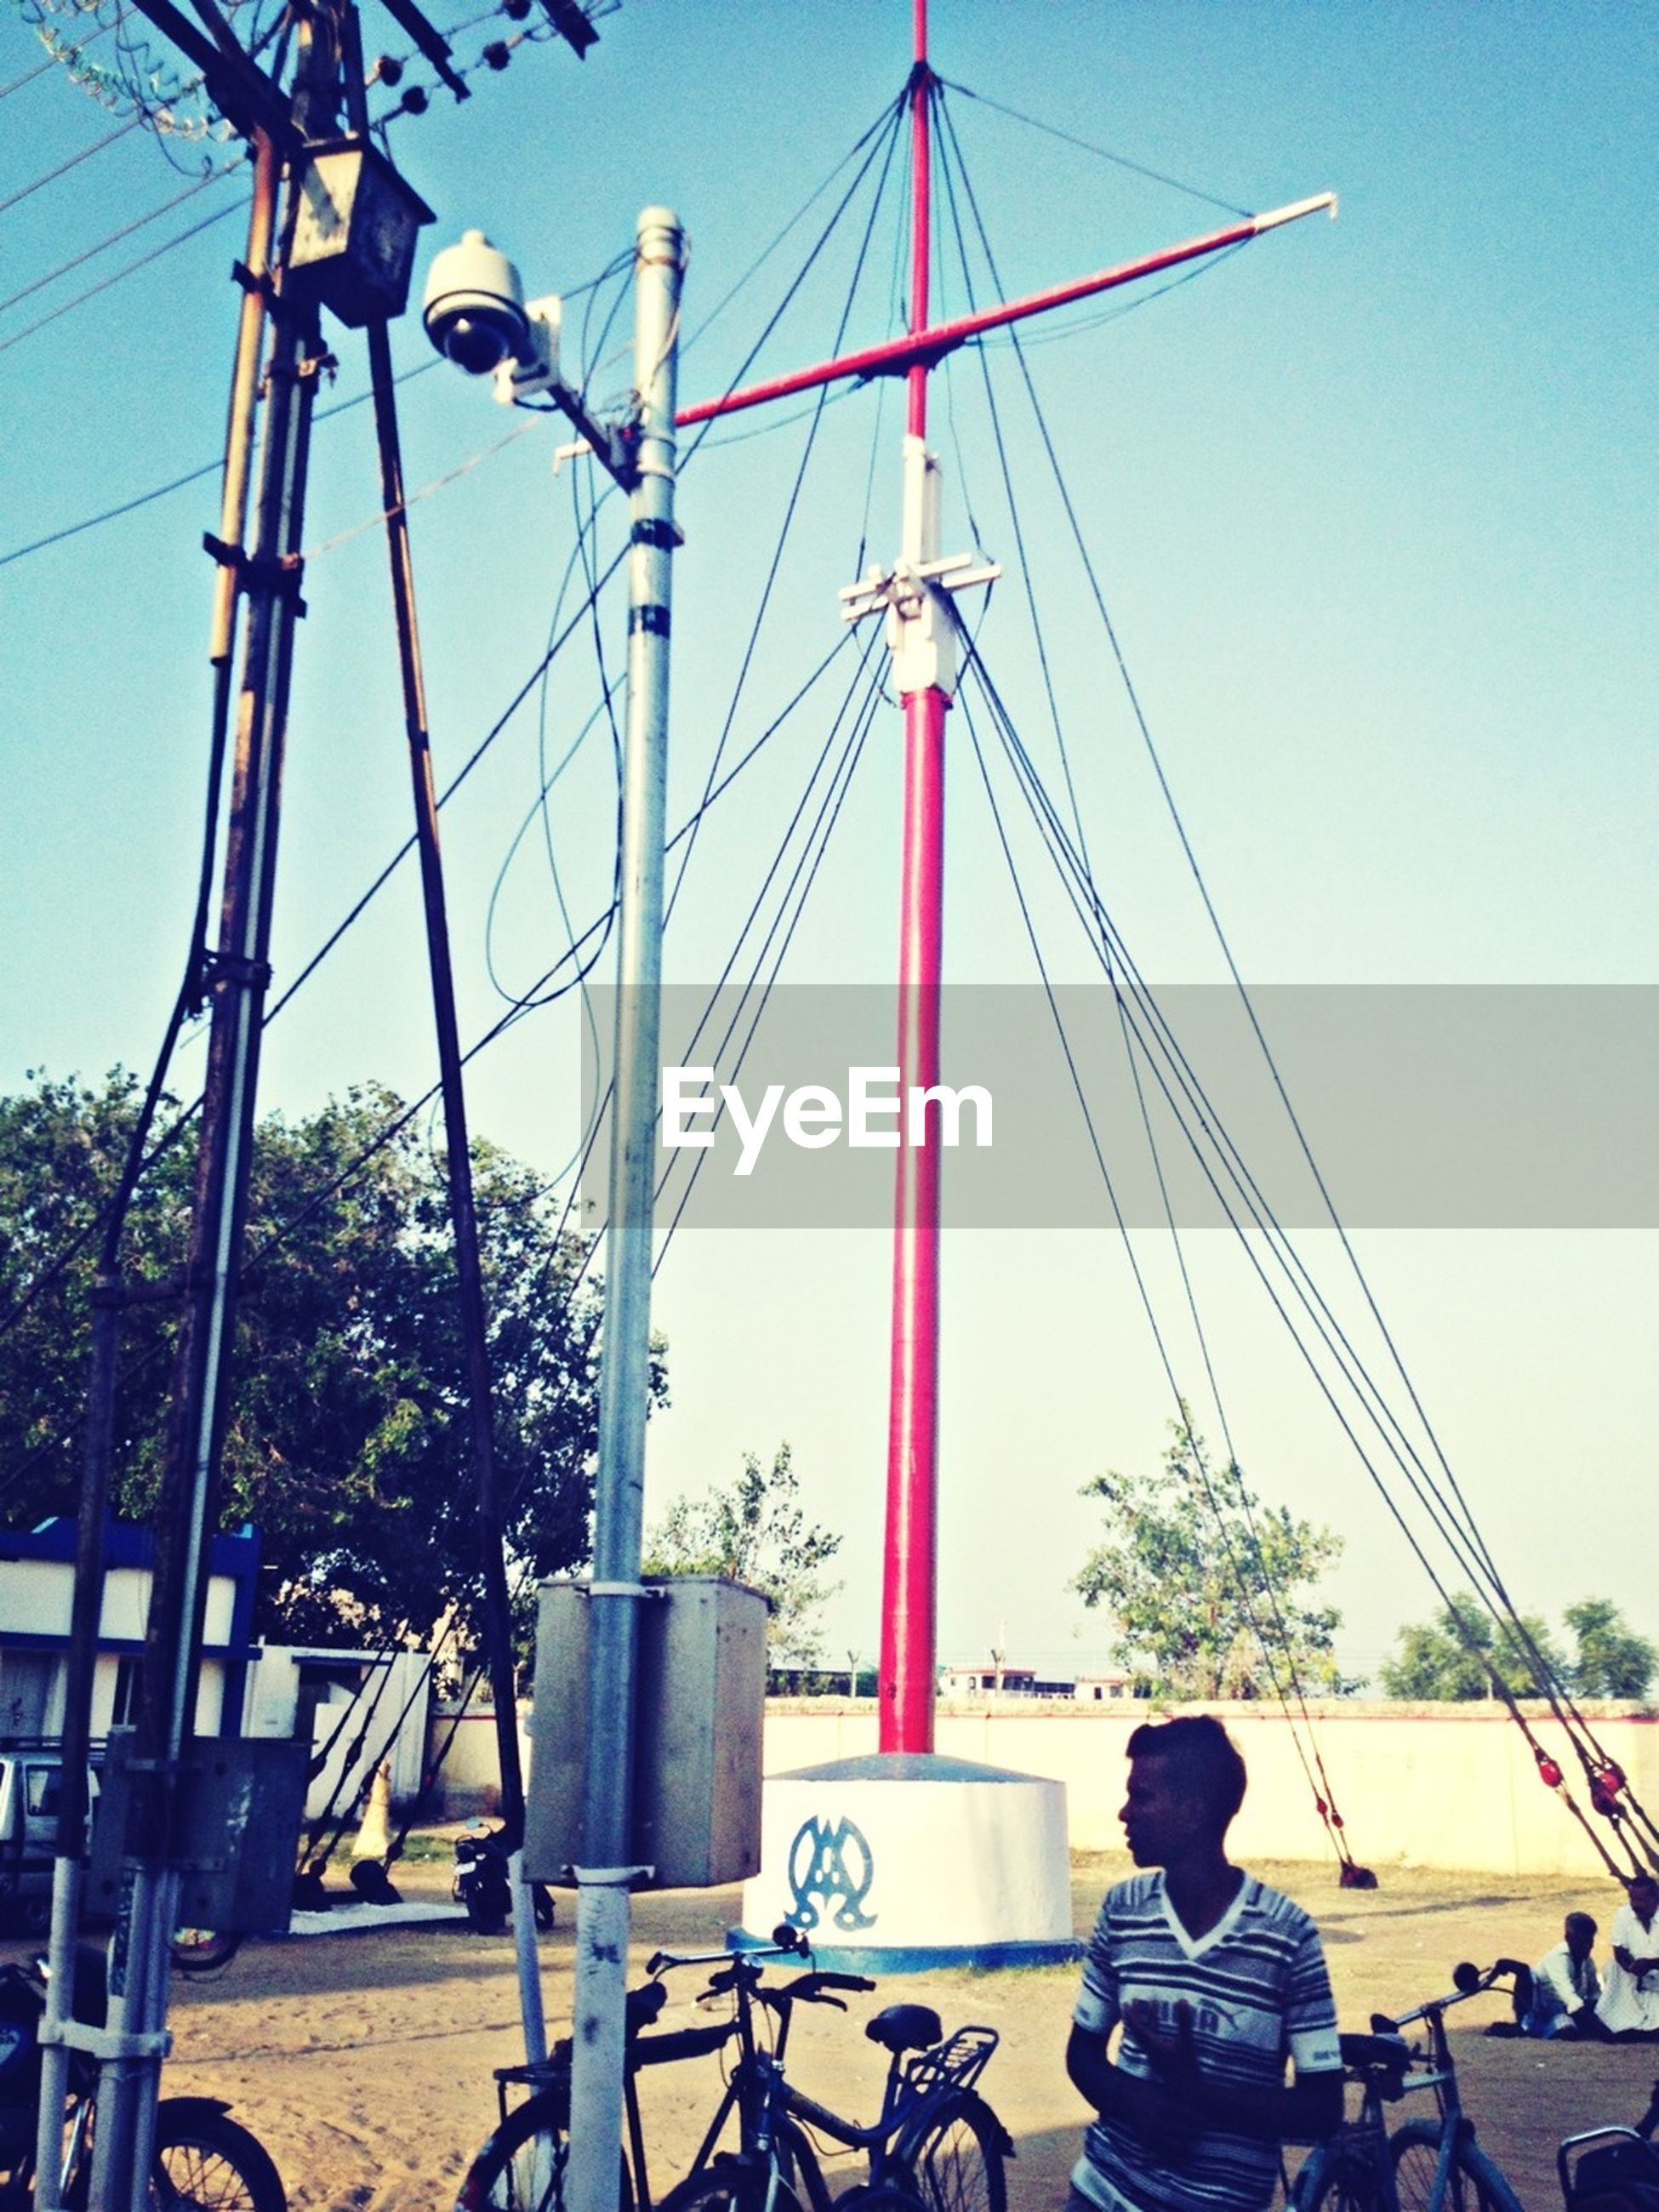 clear sky, transportation, mode of transport, men, bicycle, land vehicle, low angle view, electricity pylon, connection, leisure activity, blue, copy space, day, power line, lifestyles, outdoors, cable, sky